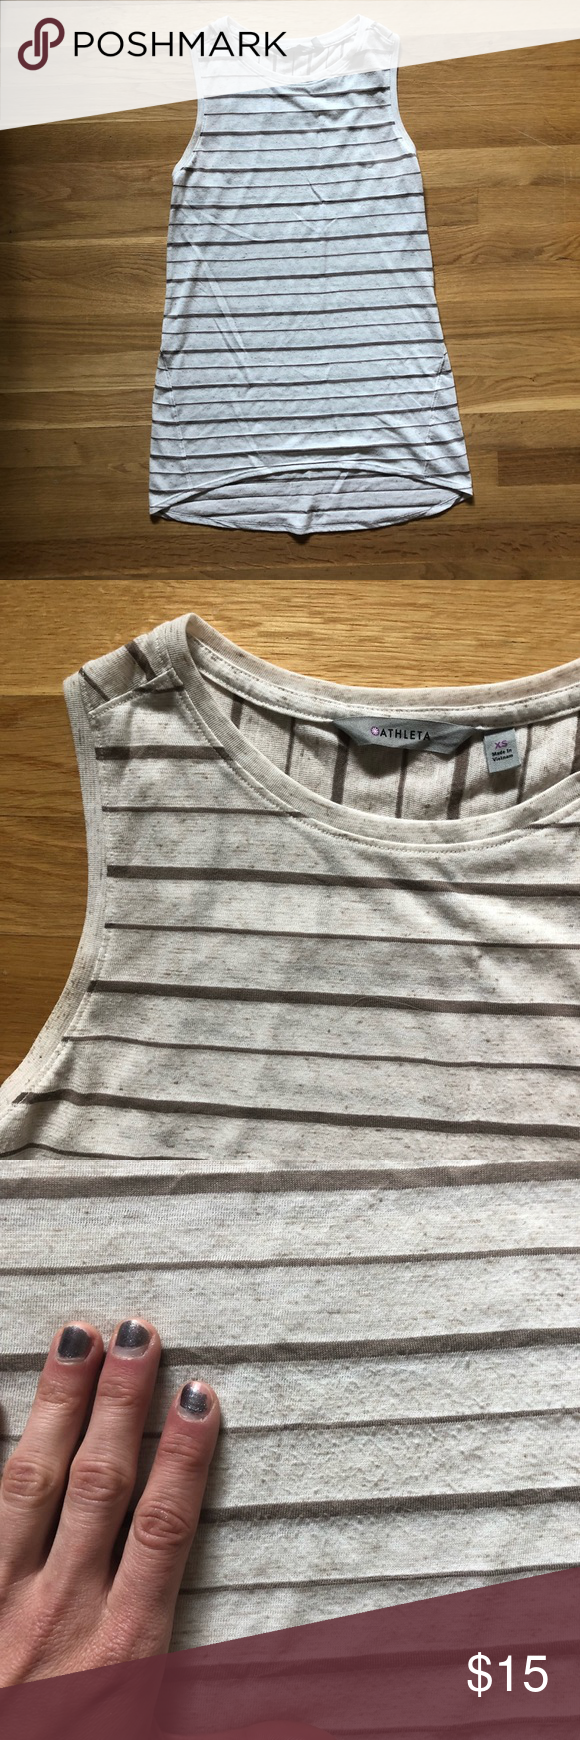 7828e3d4626 TWO Athleta Tunic Tanks TWO (2) tunic-length tank tops from Athleta. One is  natural with beige/brown stripes and the other is grey with navy stripes.